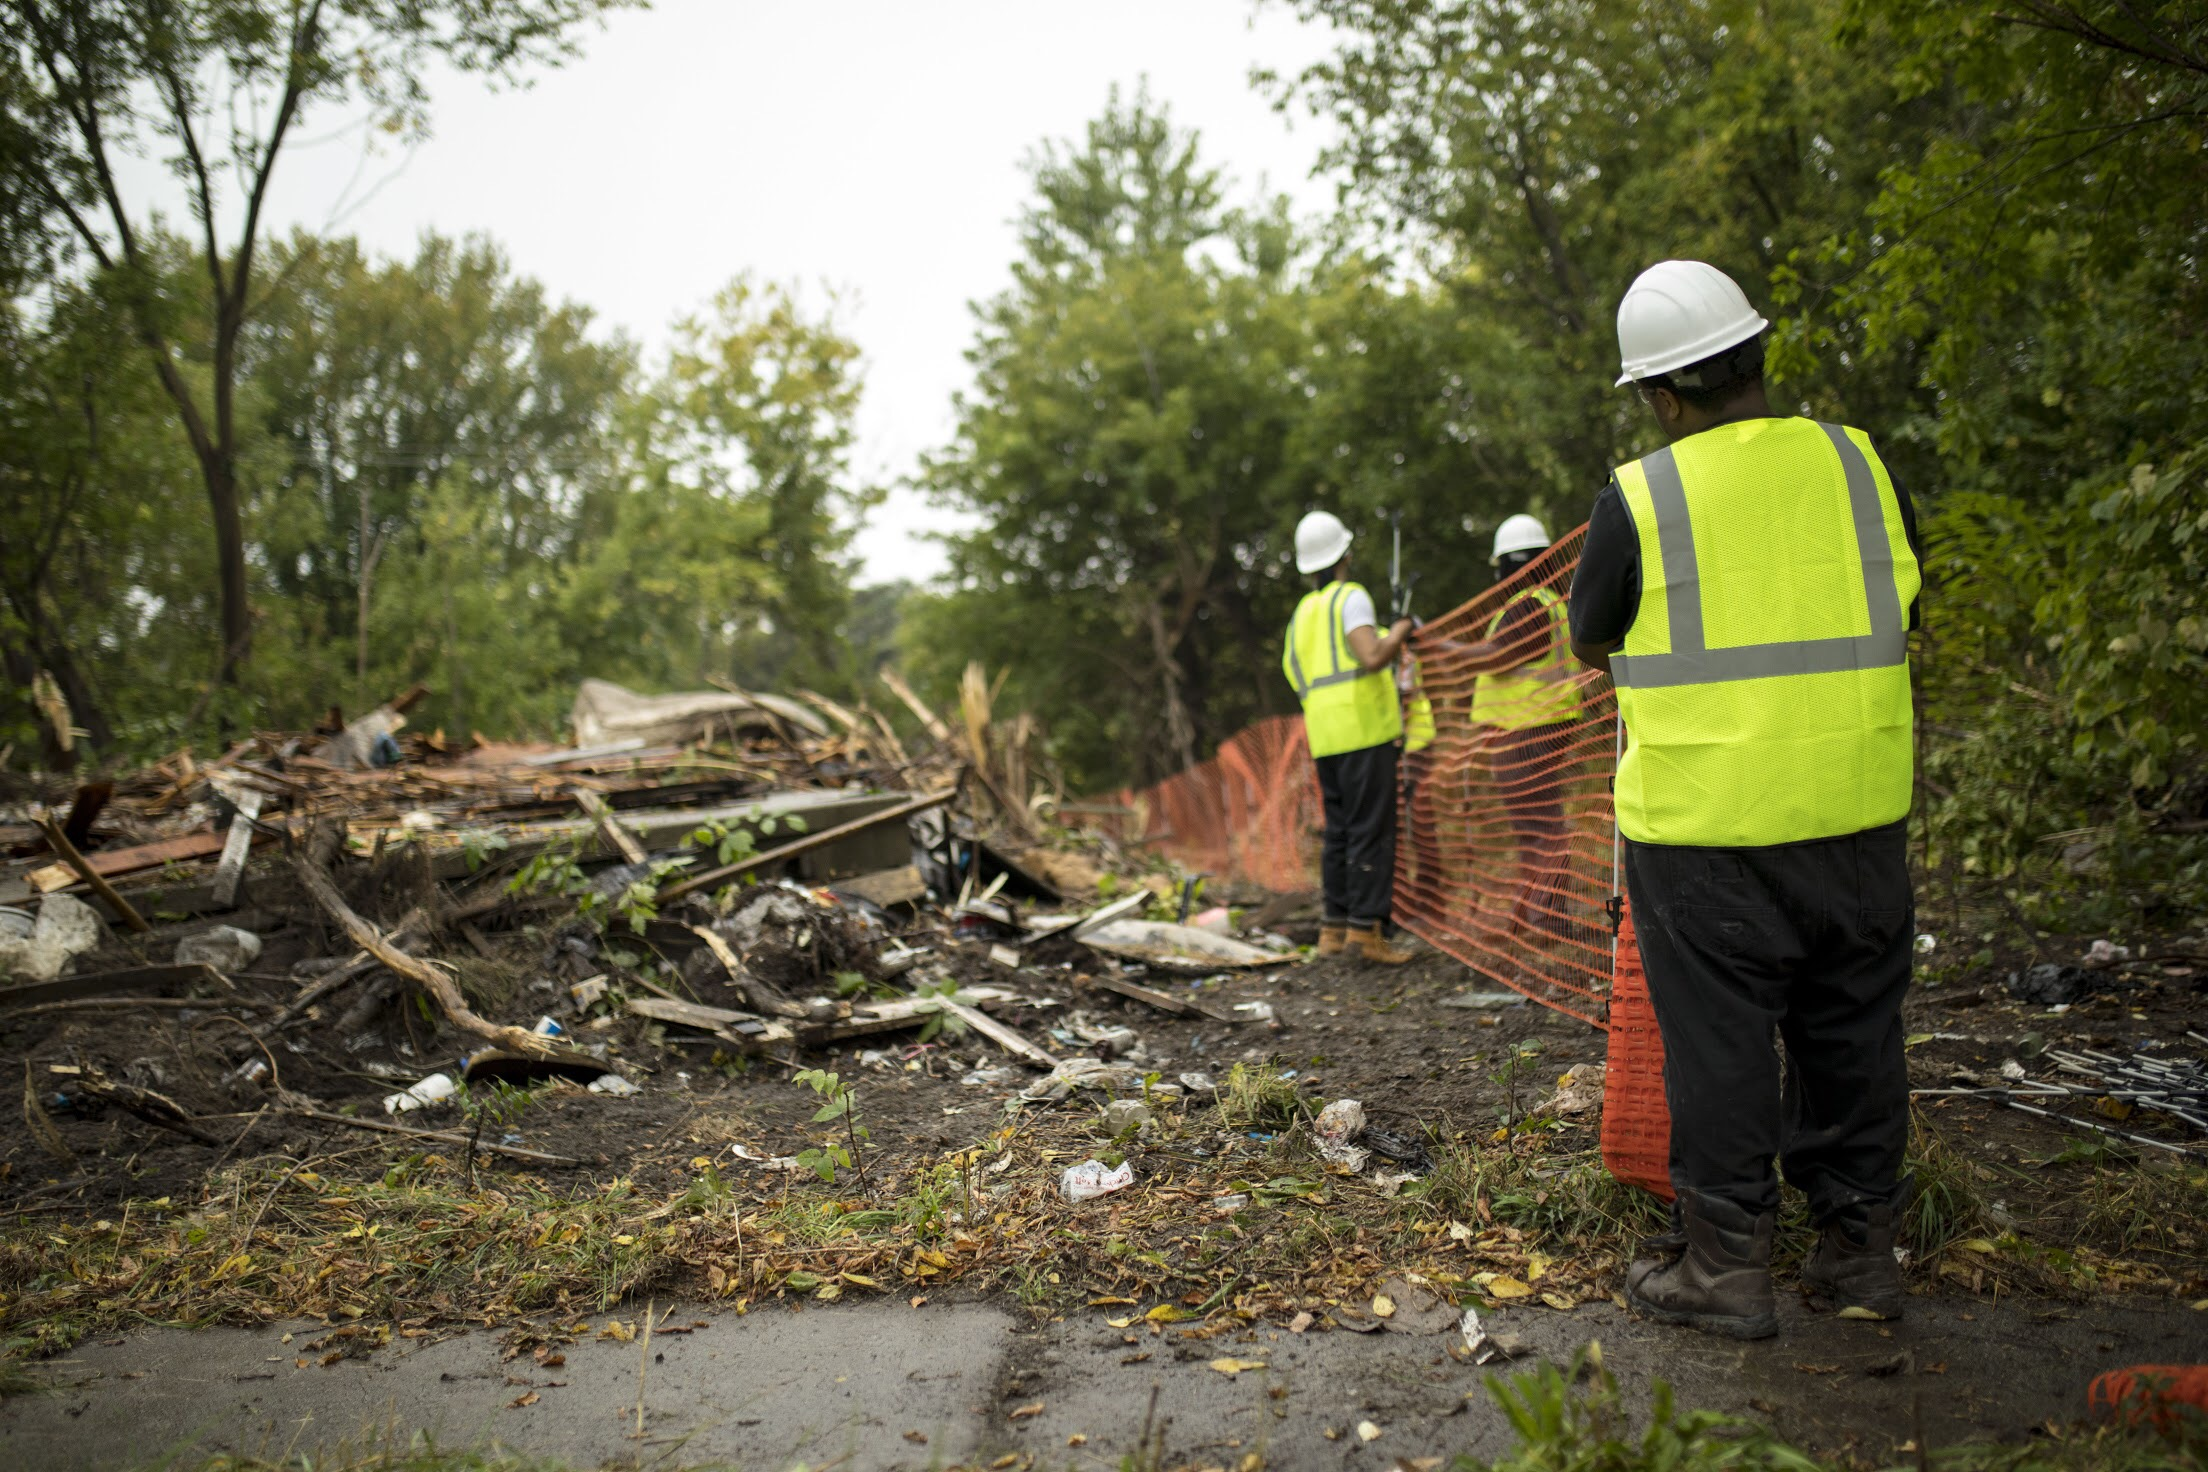 ensure Public safety - Crime has been shown to decrease by 20% as a result of demolition in urban neighborhoods. We are committed to protecting our neighborhoods through our work eliminating blight and reducing the negative effects of blight including violence & crime, fire hazards, and psychological distress.